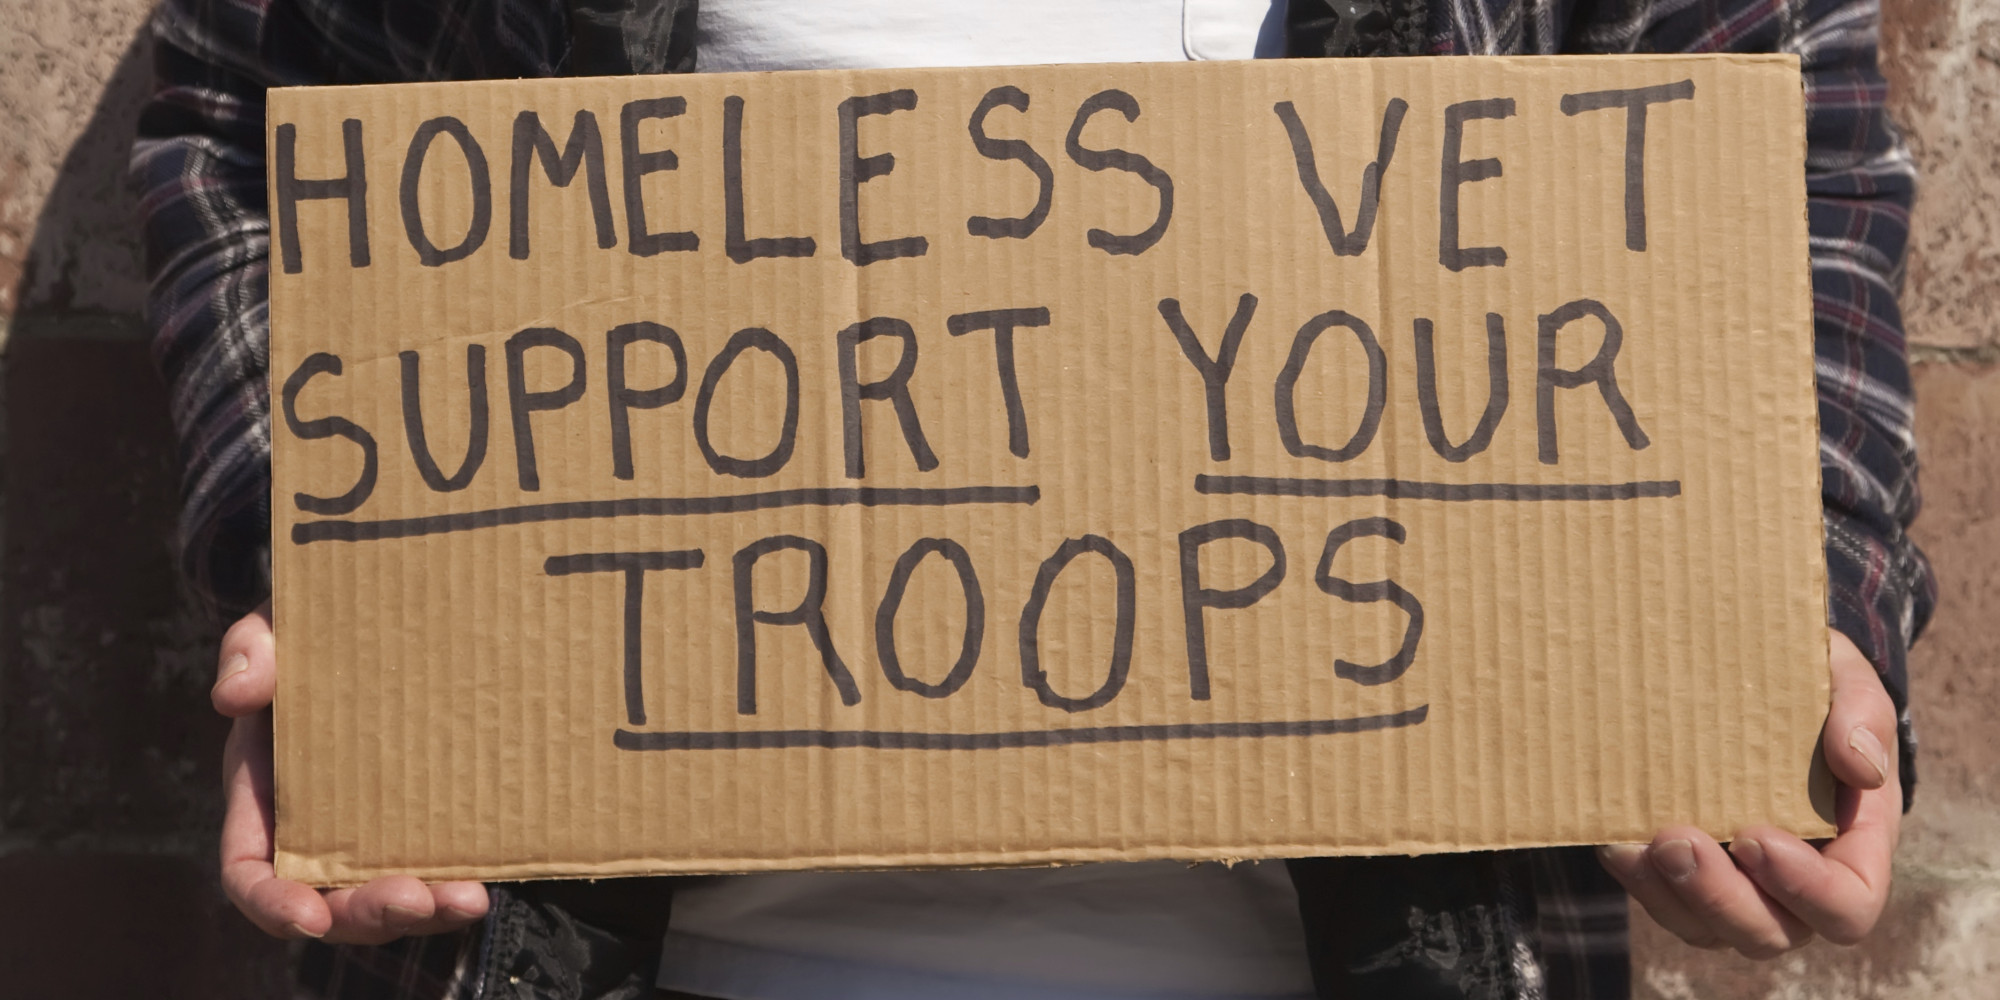 A Call to Help Provide Homeless Veterans in Transition With Housing